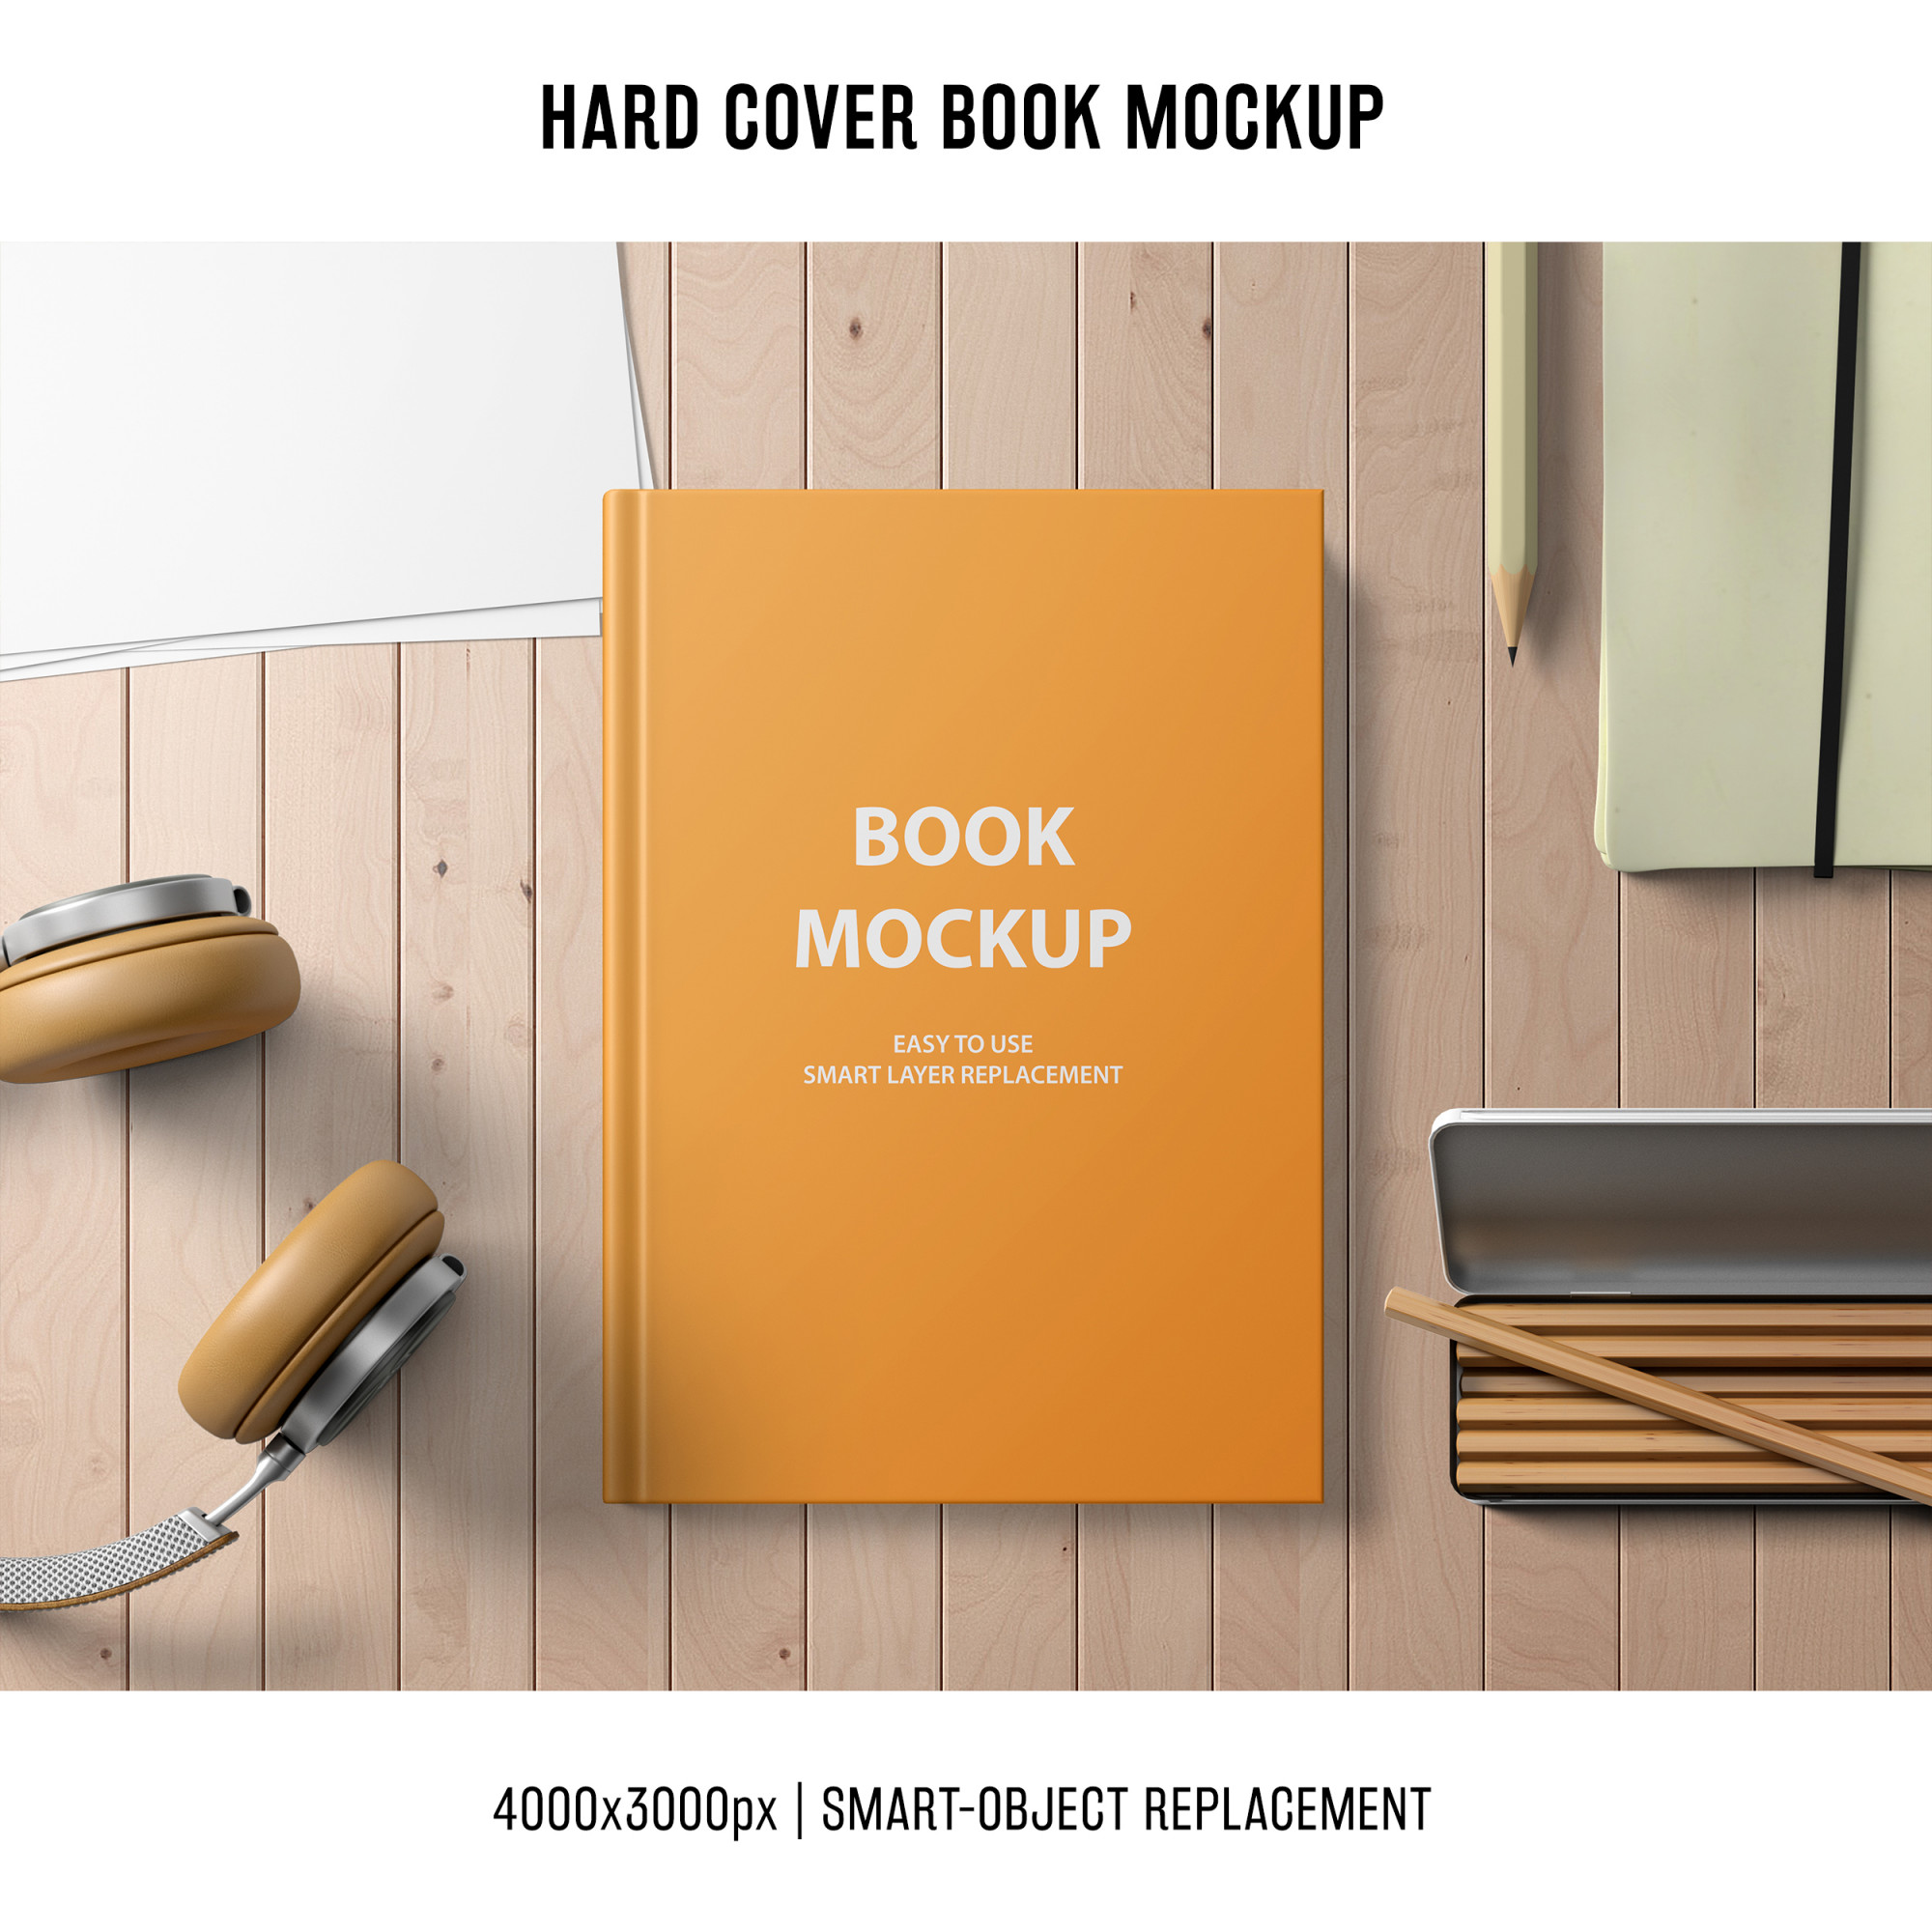 Hard cover book mockup with headphones and pencils